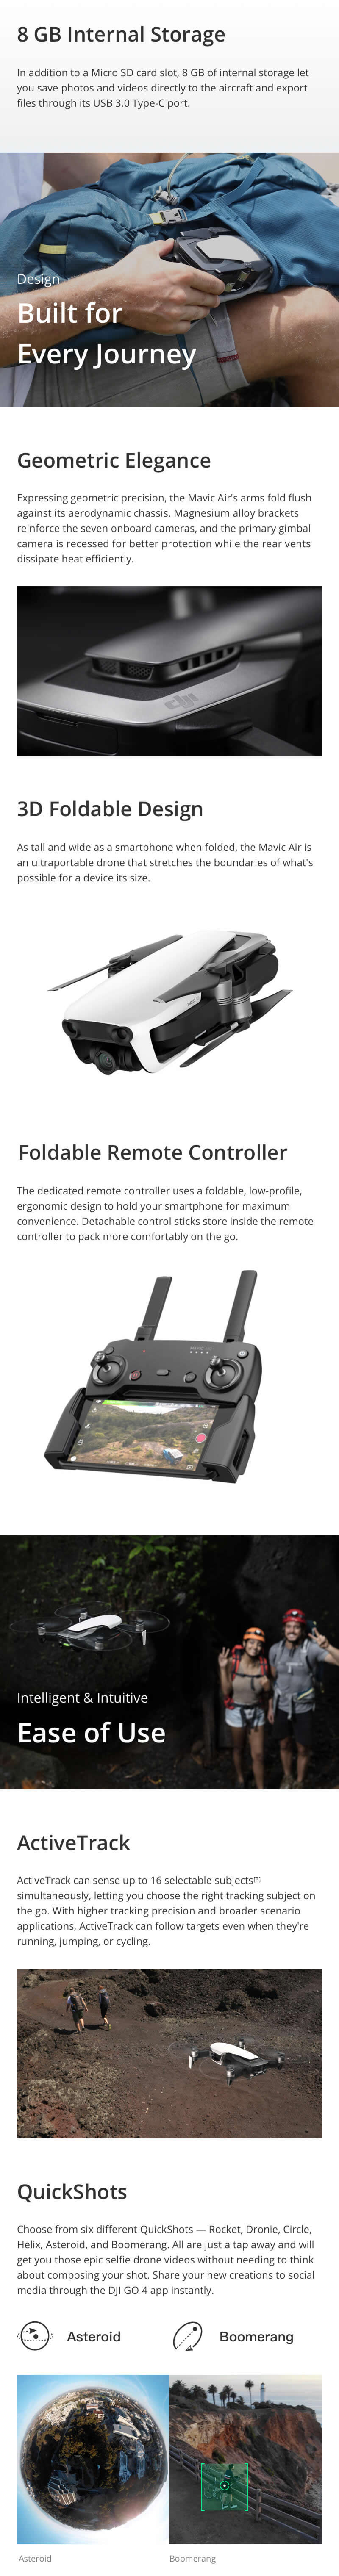 mavic-air-description-2